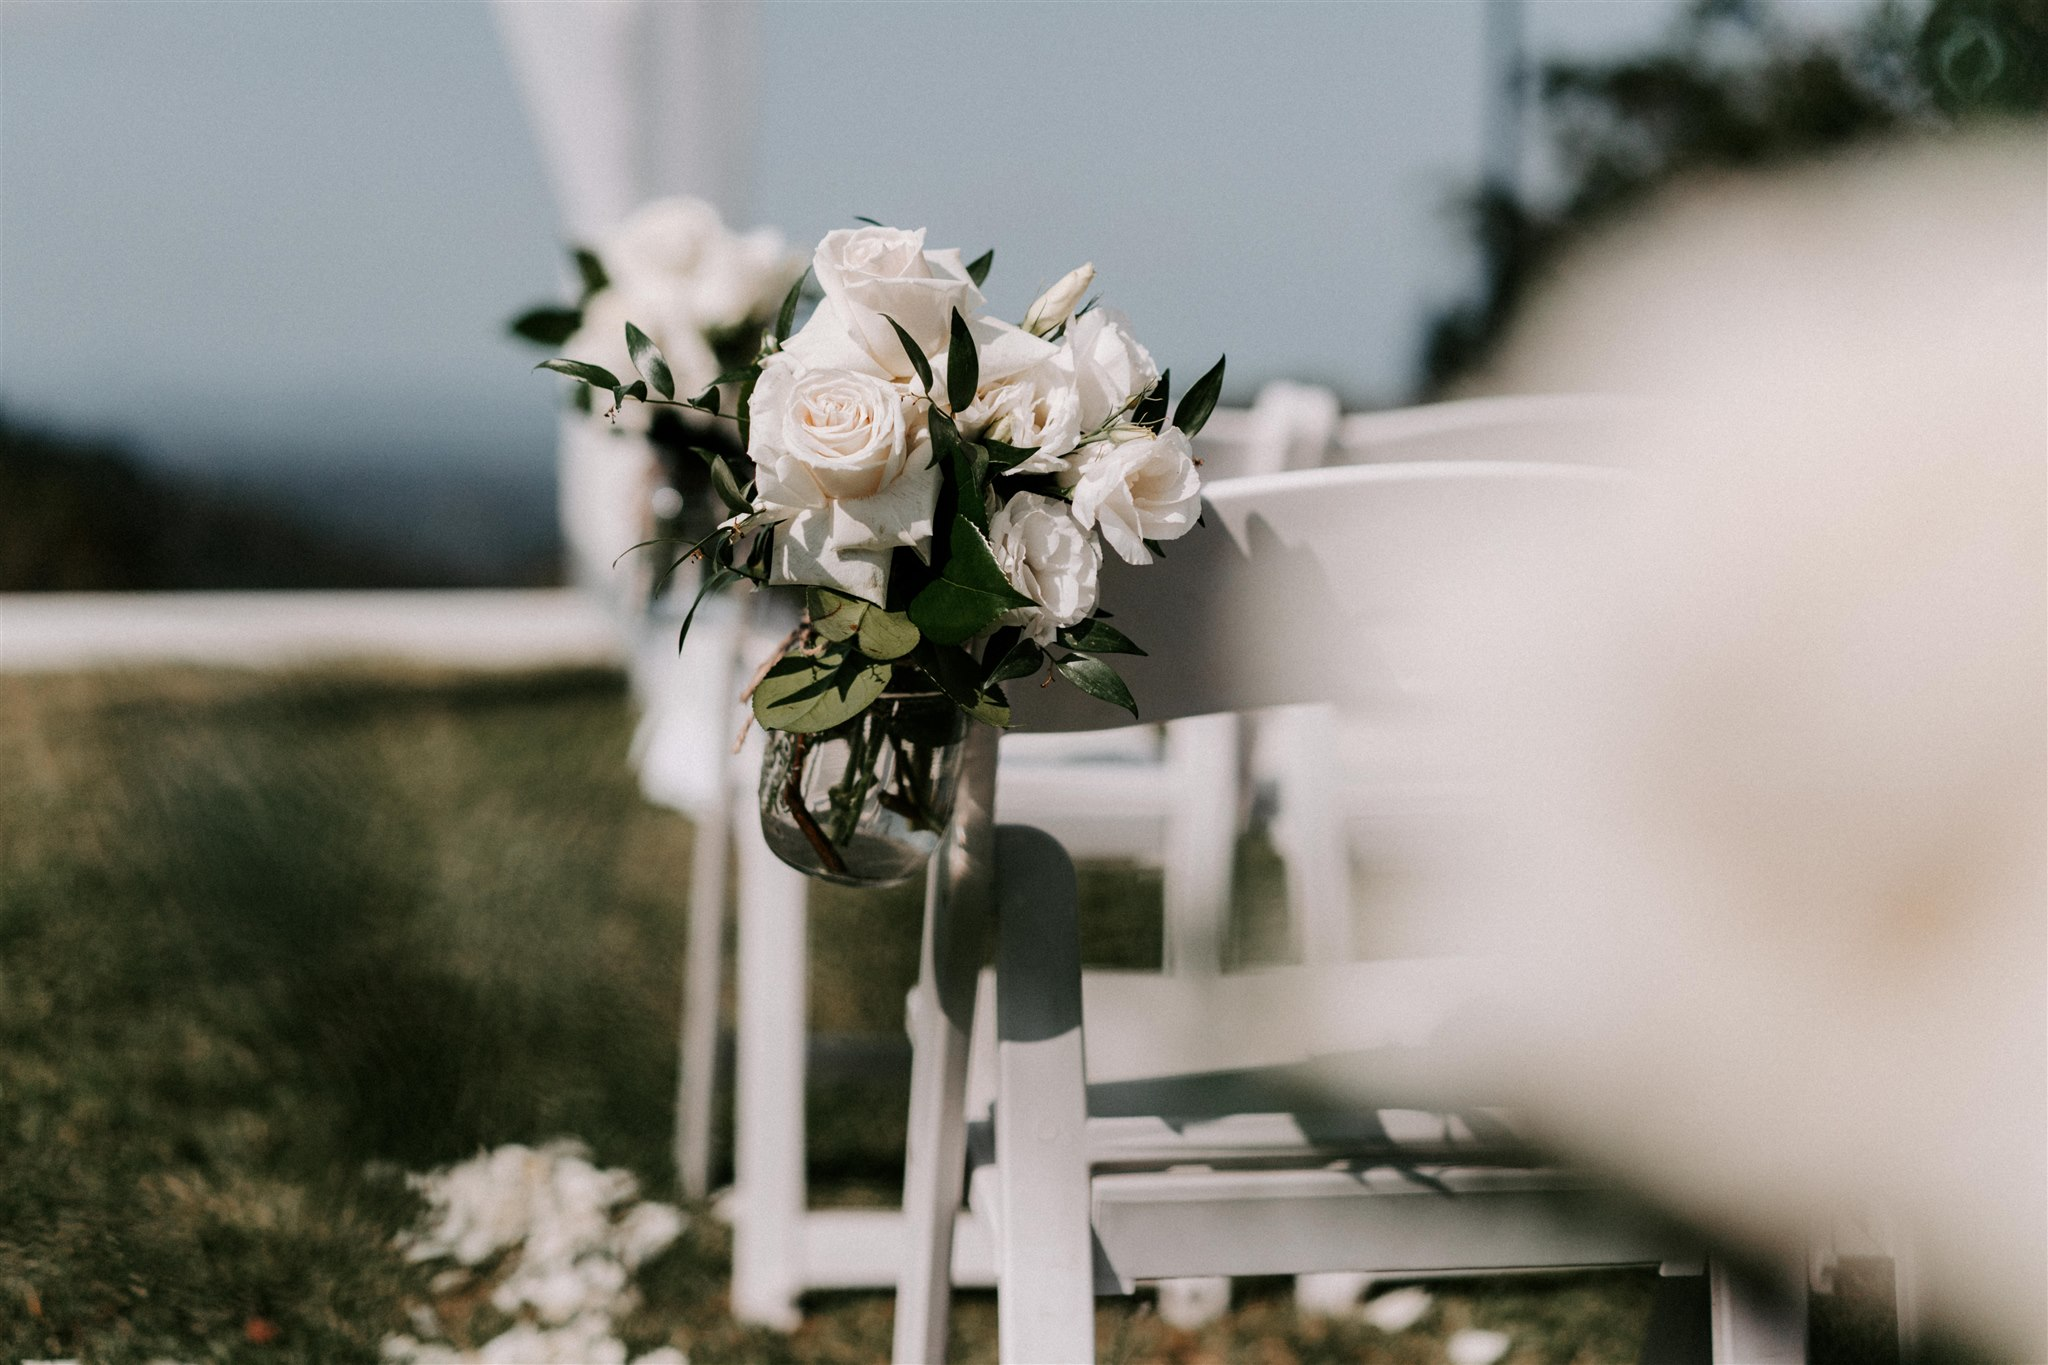 Ceremony chair jars featuring white blooms and greenery